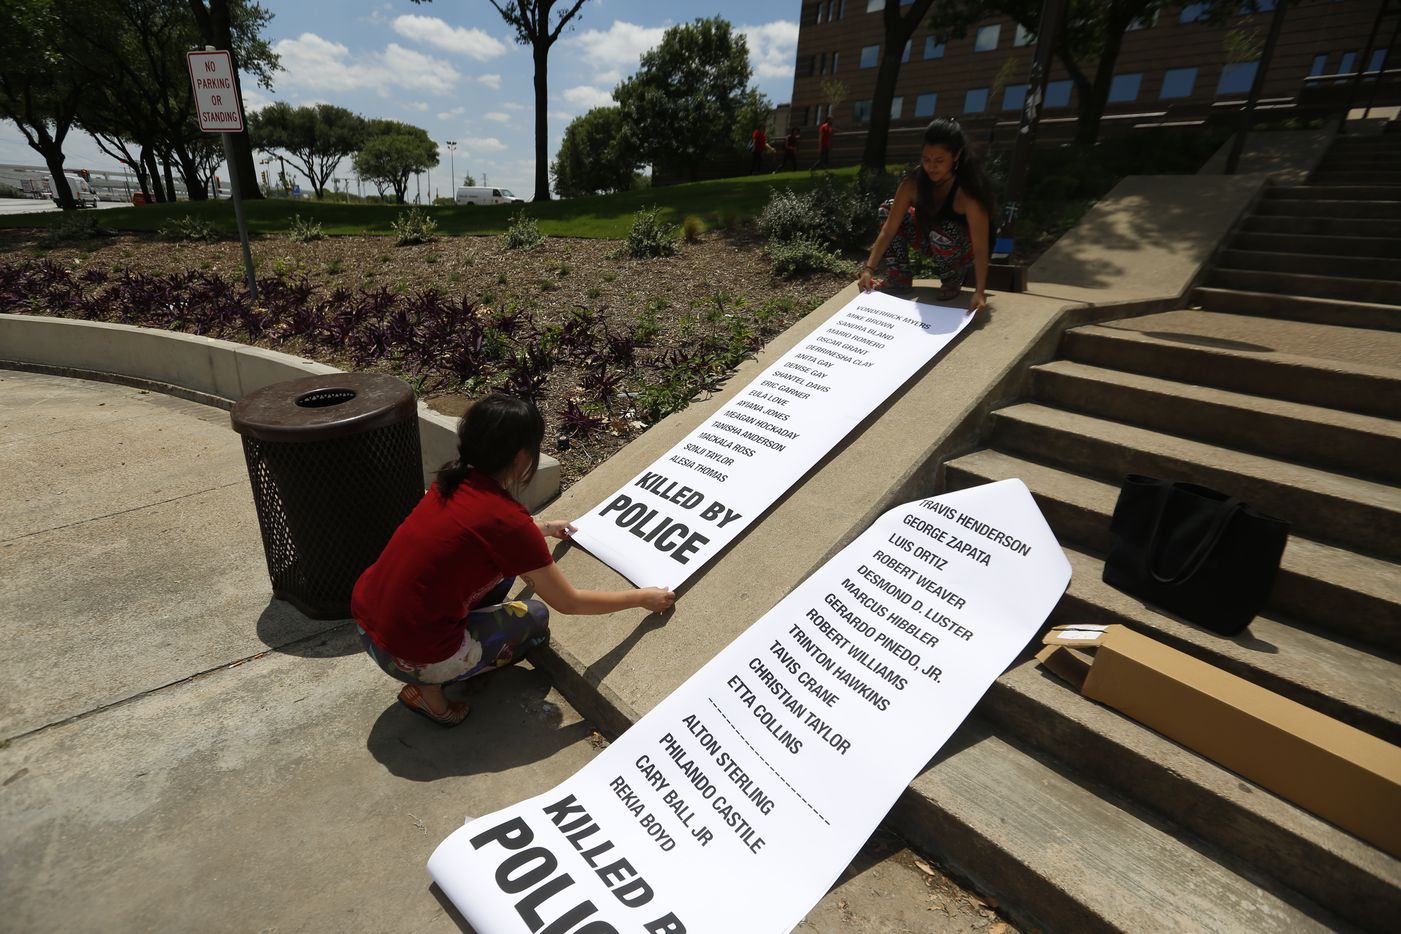 Carol Zoila, left, and Edyka Chiliomé  place banners of names of people killed by police on the steps of the Frank Crowley Courts Building.